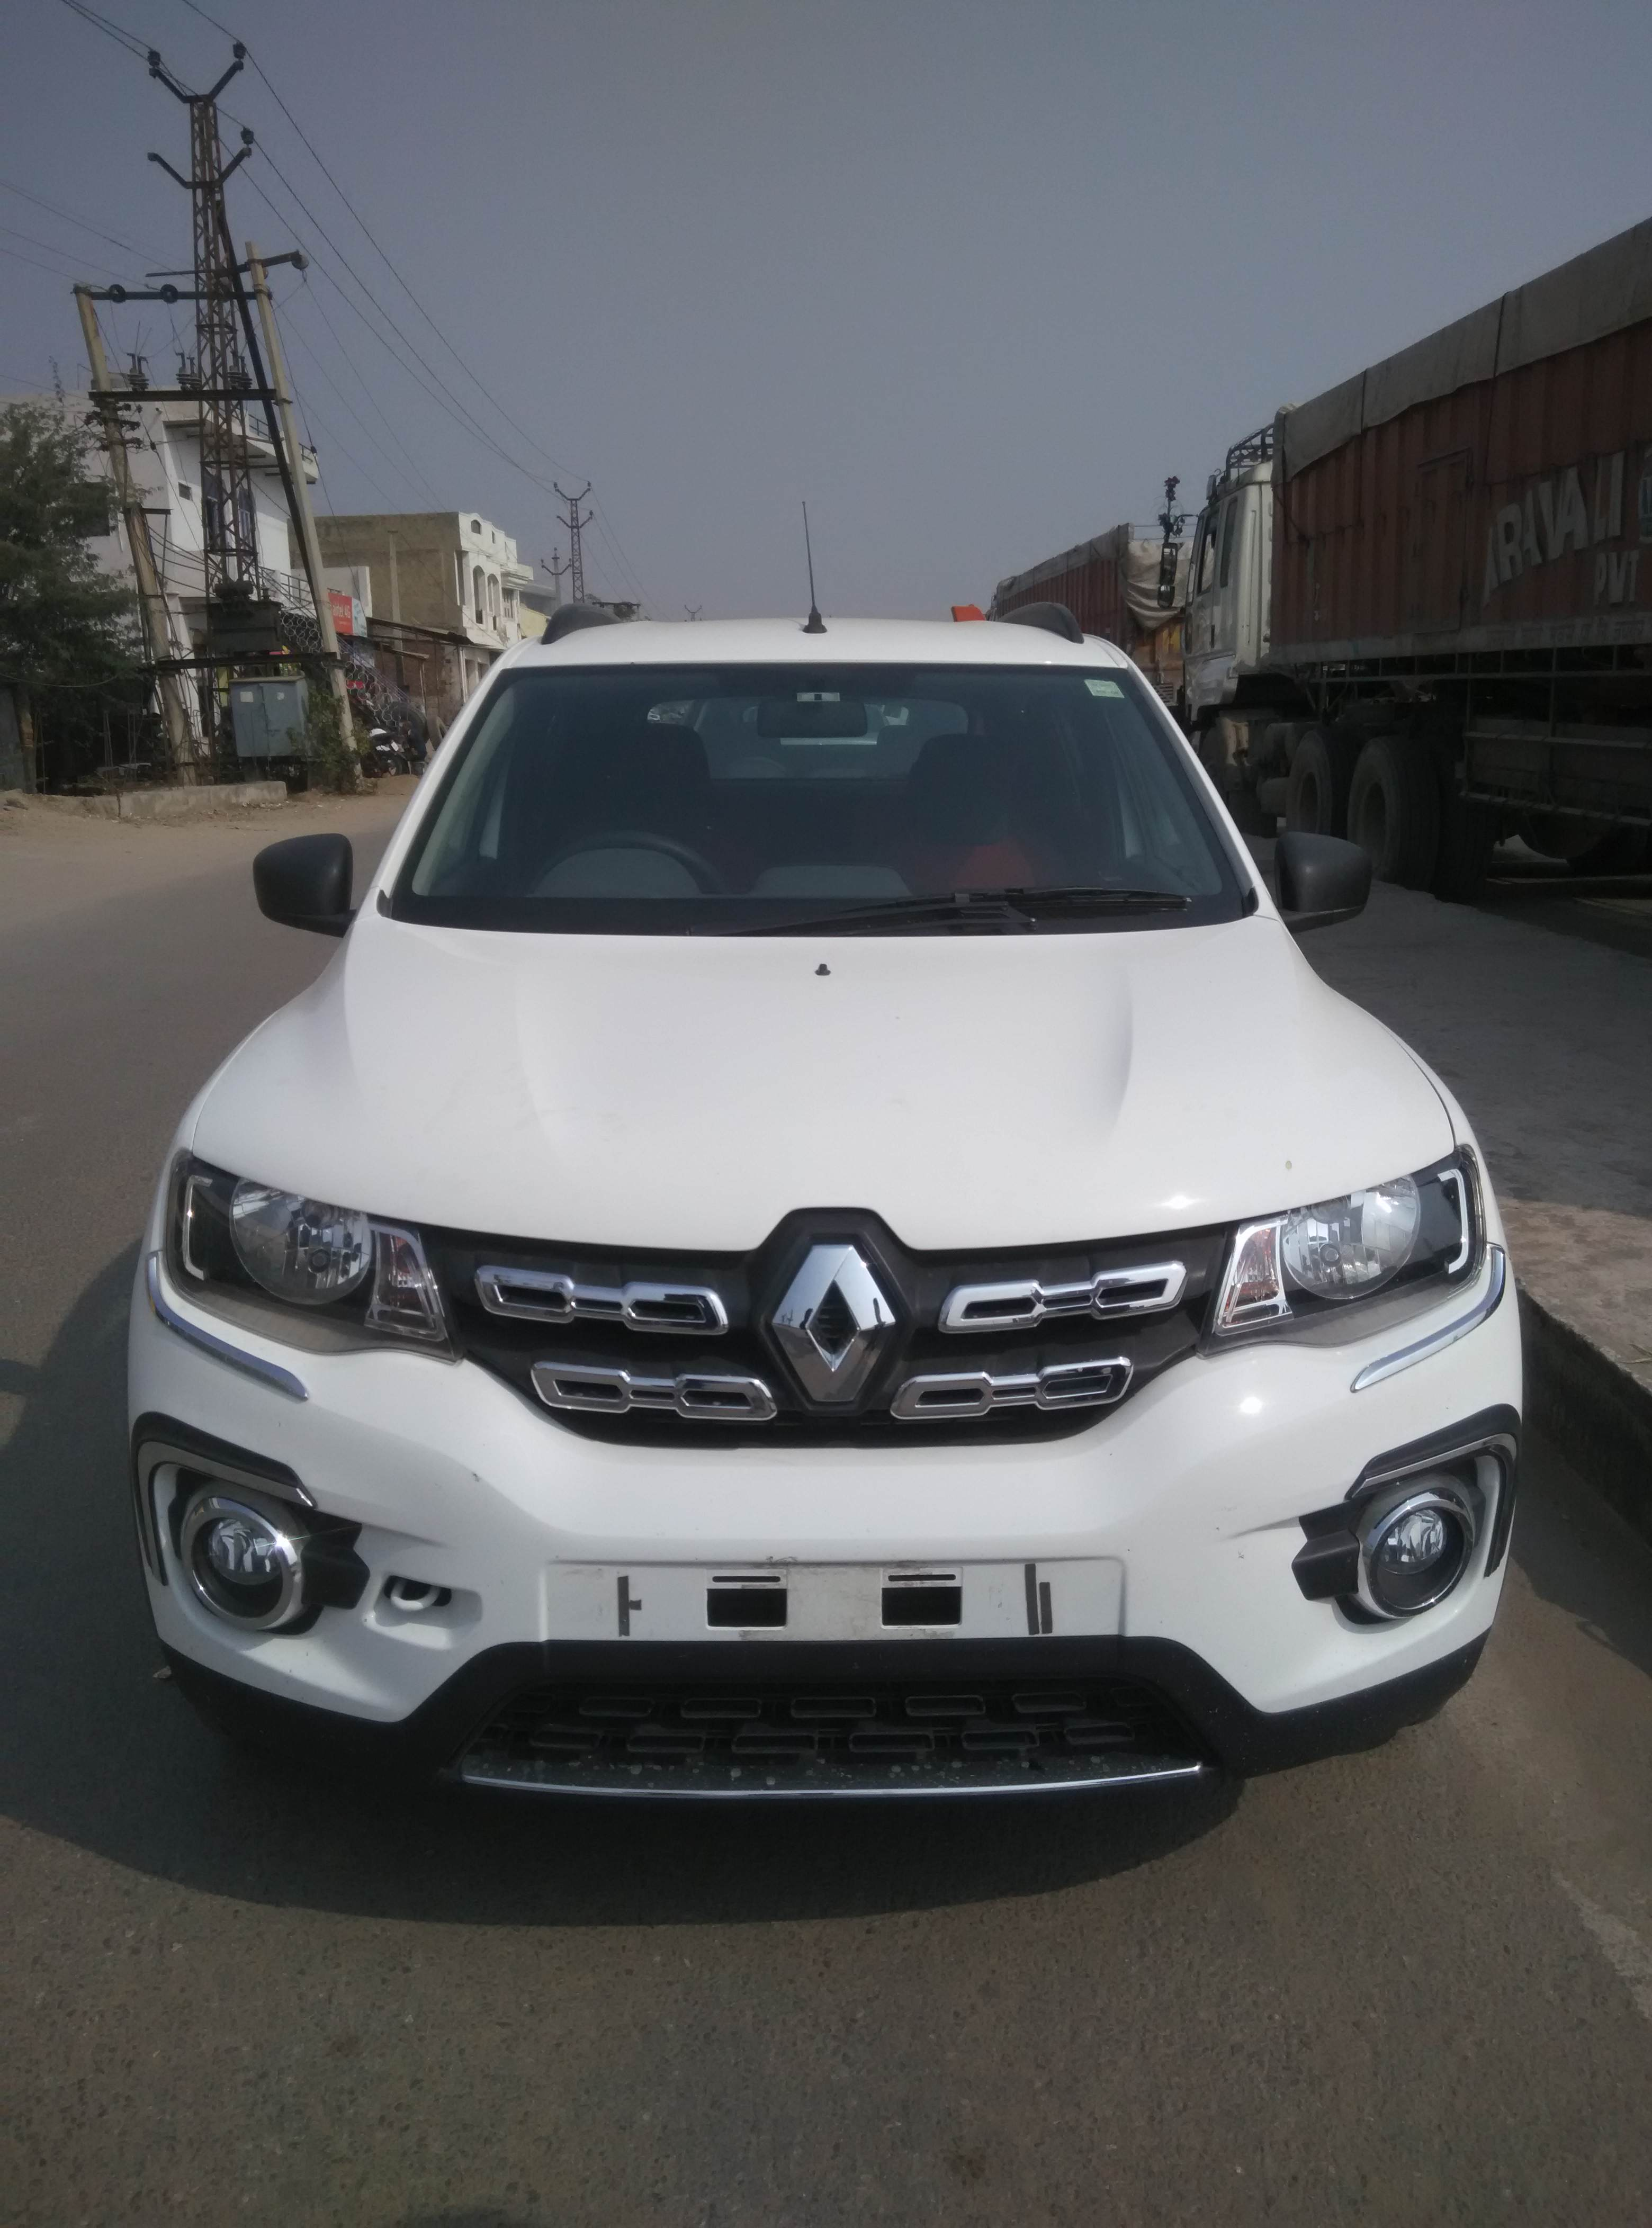 renault duster kwid price with Renault Kwid Rxt Optional Review Sqnroqrouqm on 2016 Honda Crv 7 Seater Spied For The First Time India Bound 241337 as well 5 New Renault Cars Kwid Based Micro Suv To All New Duster additionally Dacia Duster 2 2017 Nouveau Suv Low Cost 115629 moreover Renault Lodgy moreover Images.